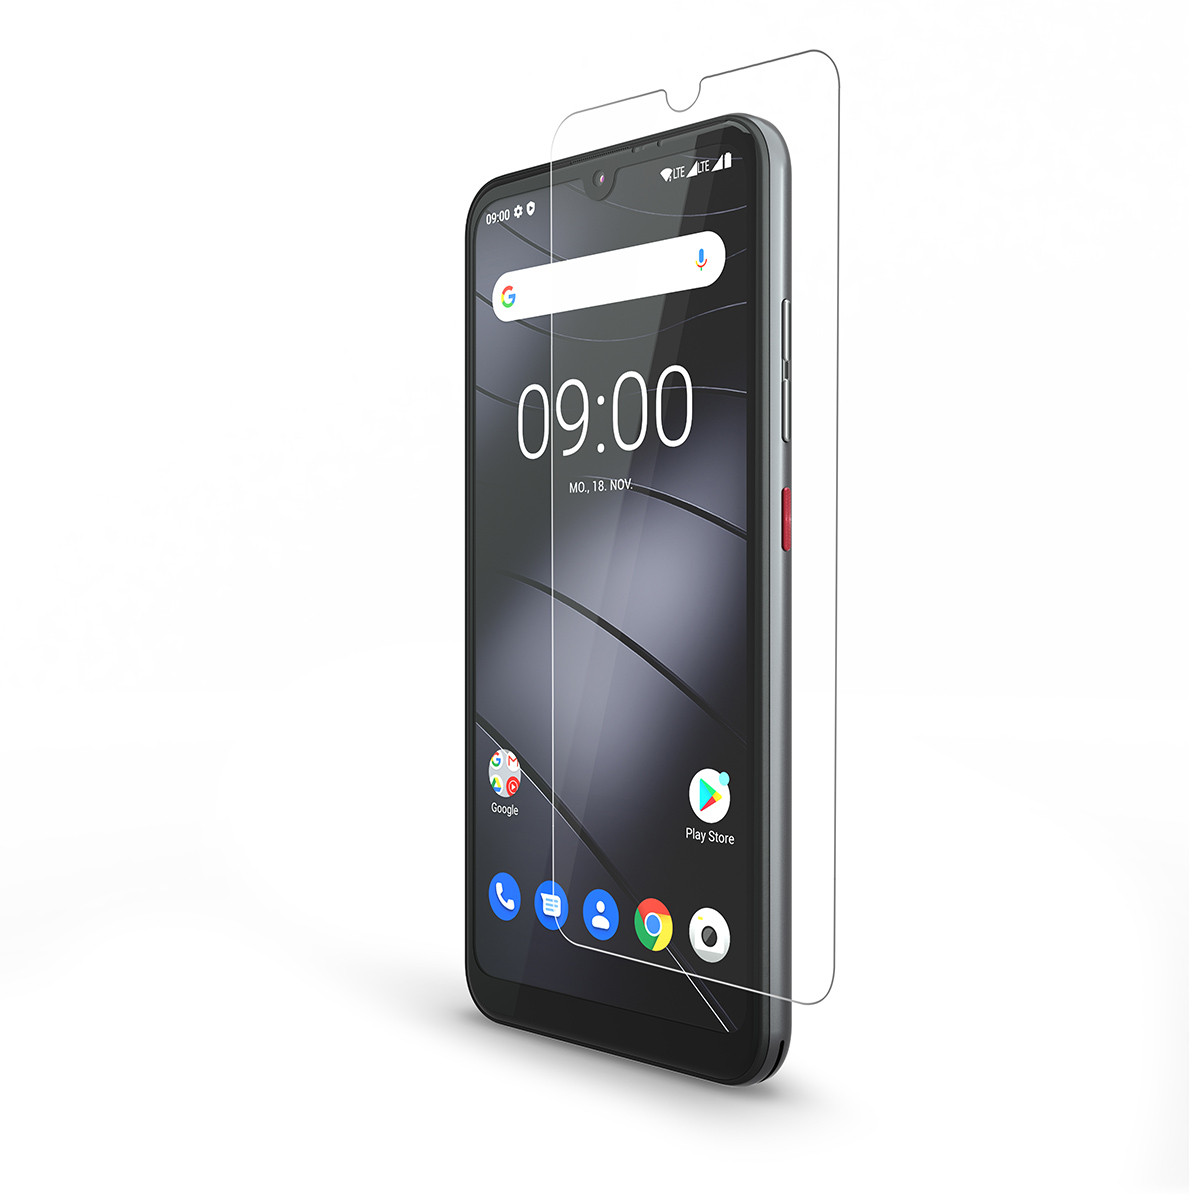 Gigaset Hybridglass Display Protector (GS3)